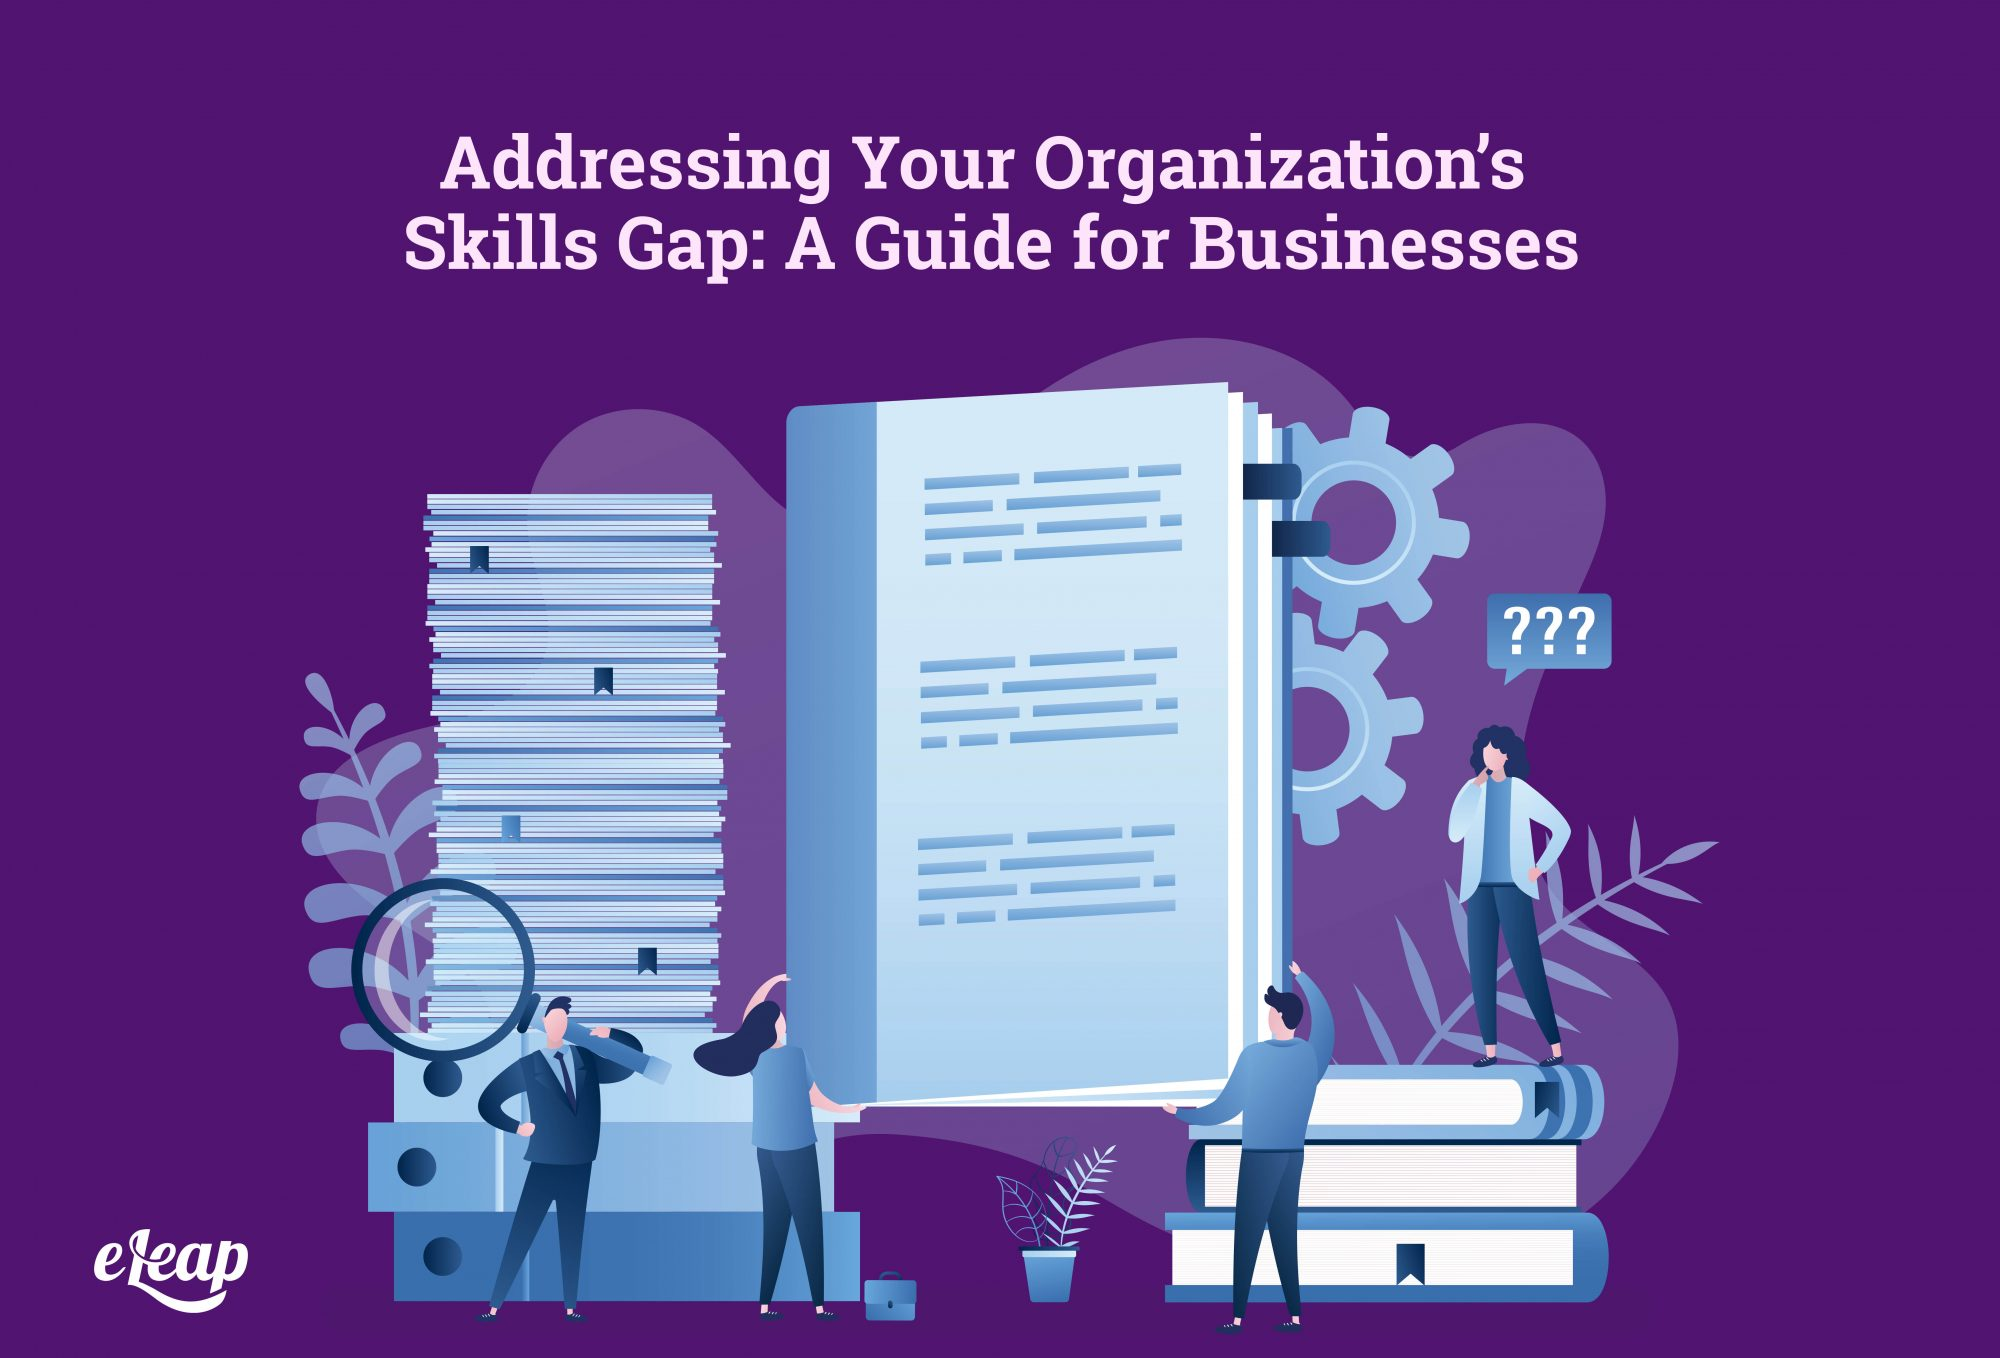 Addressing Your Organization's Skills Gap: A Guide for Businesses